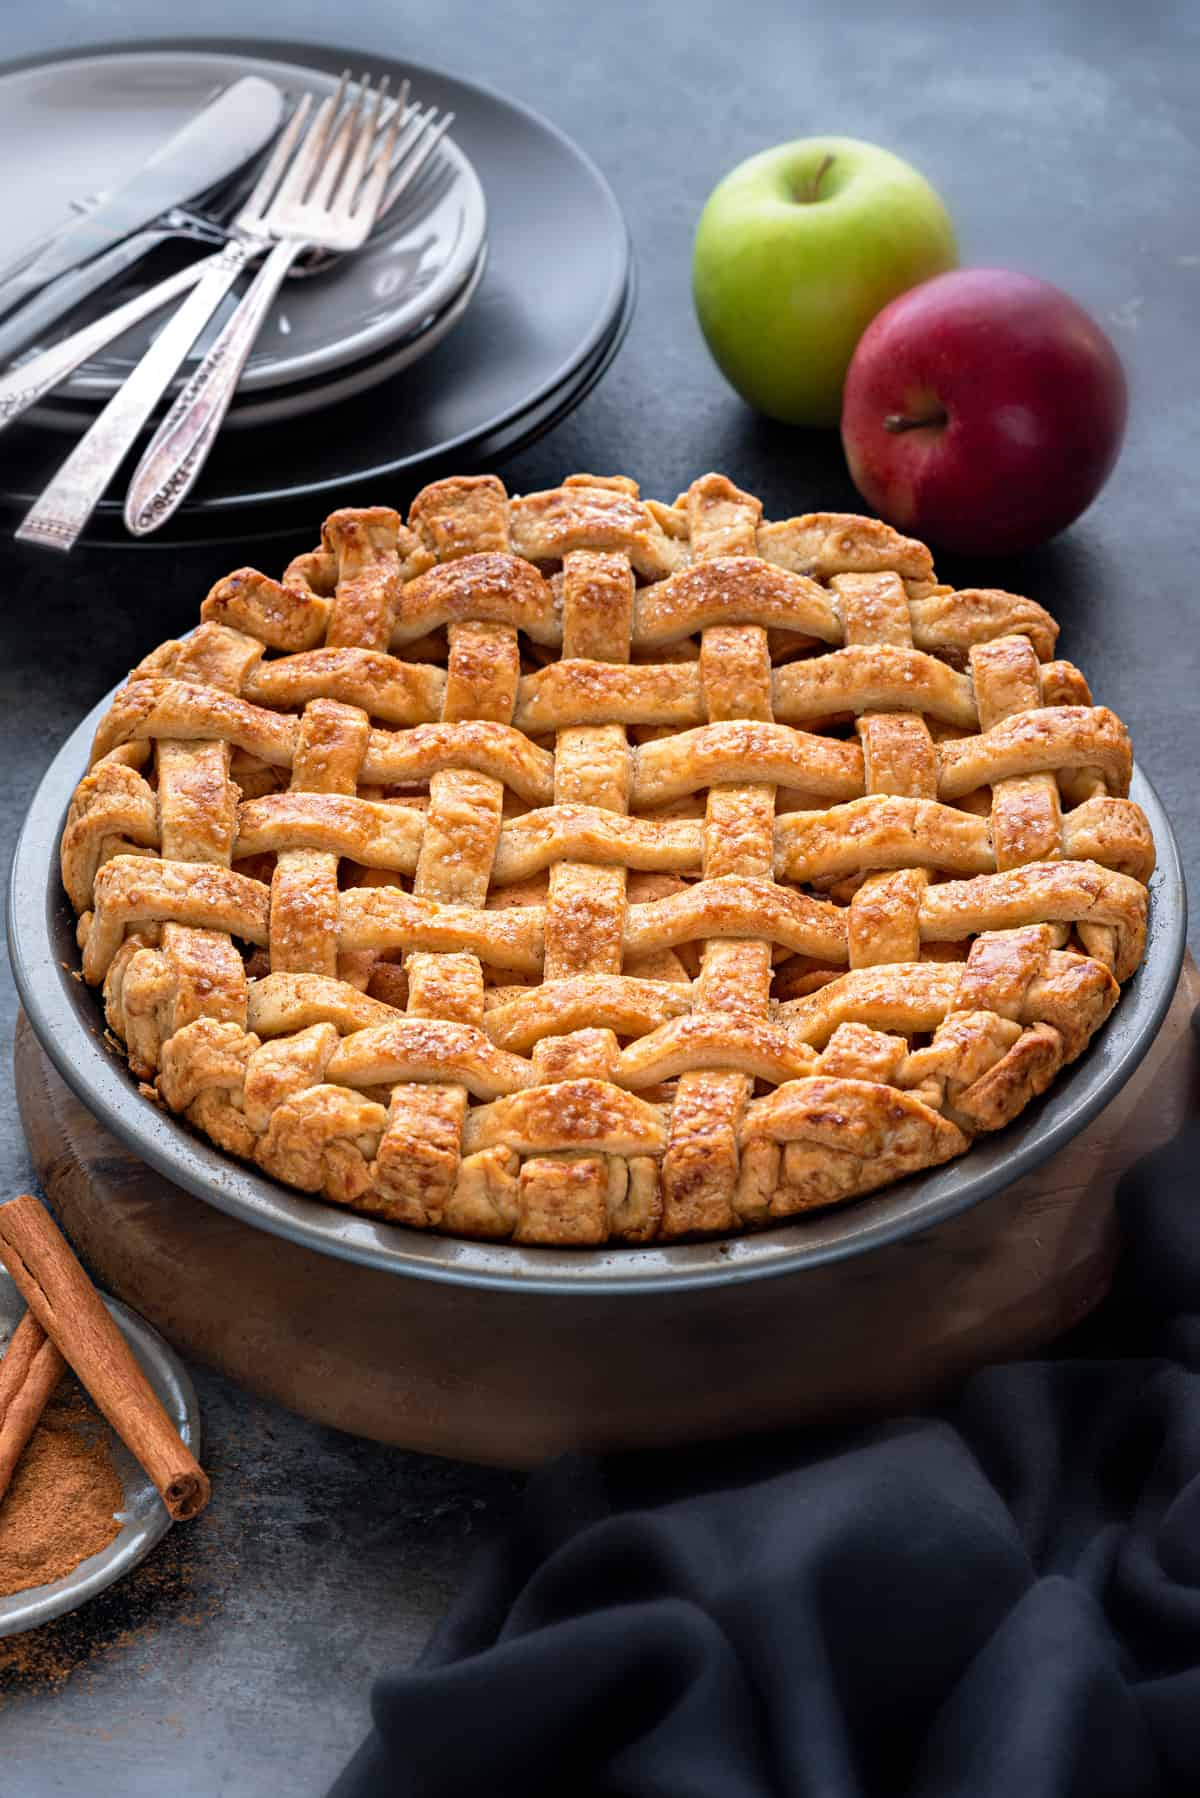 An apple pie with crispy lattice crust, shot from slightly above, apples placed in the background.